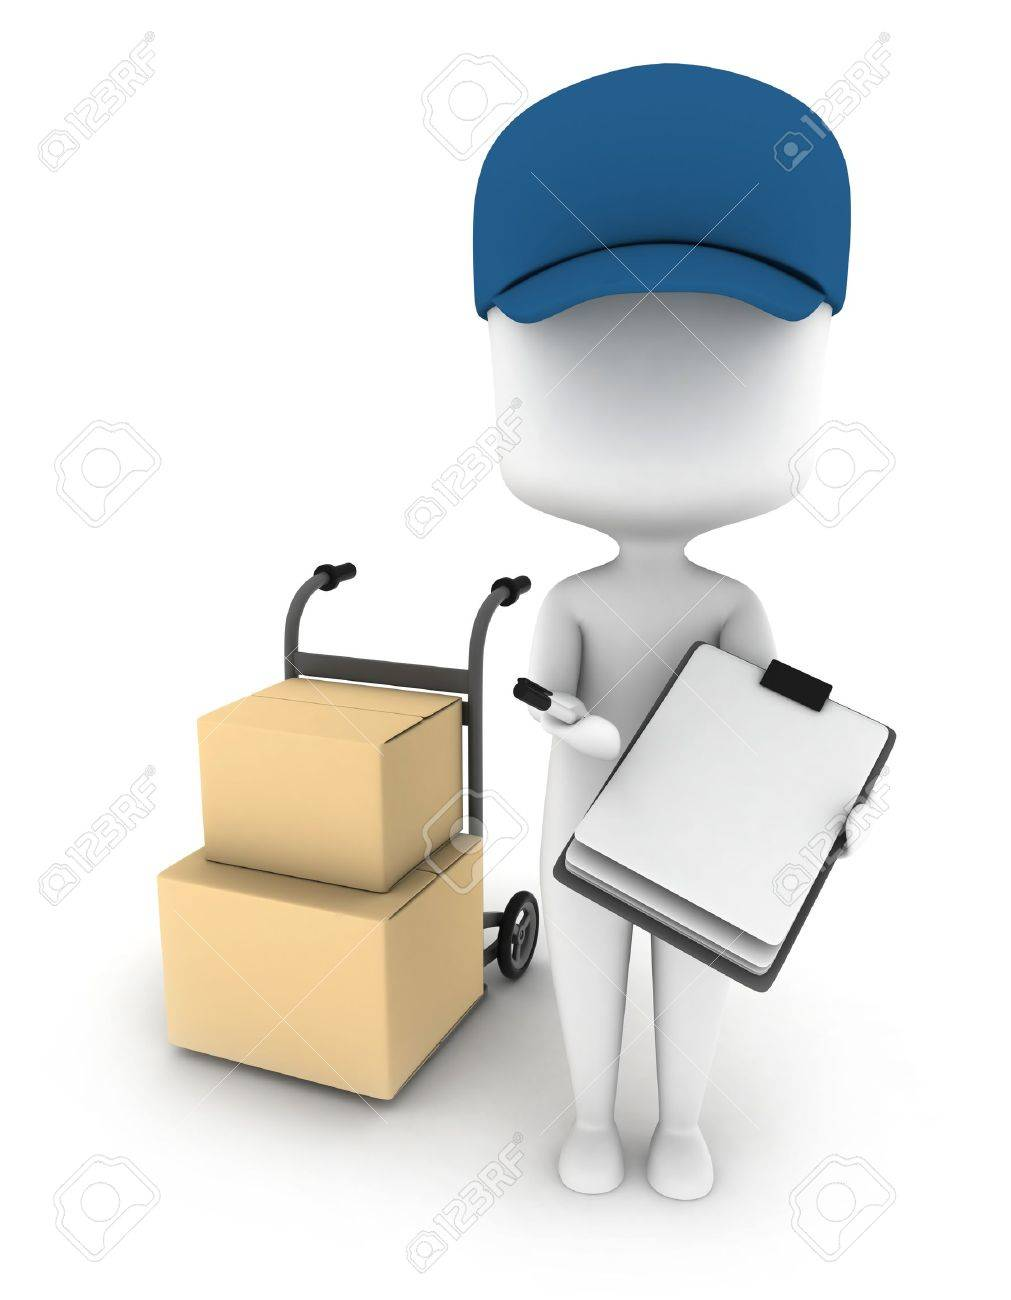 3D Illustration of a Delivery Man Delivering Packages Stock Illustration - 8993553